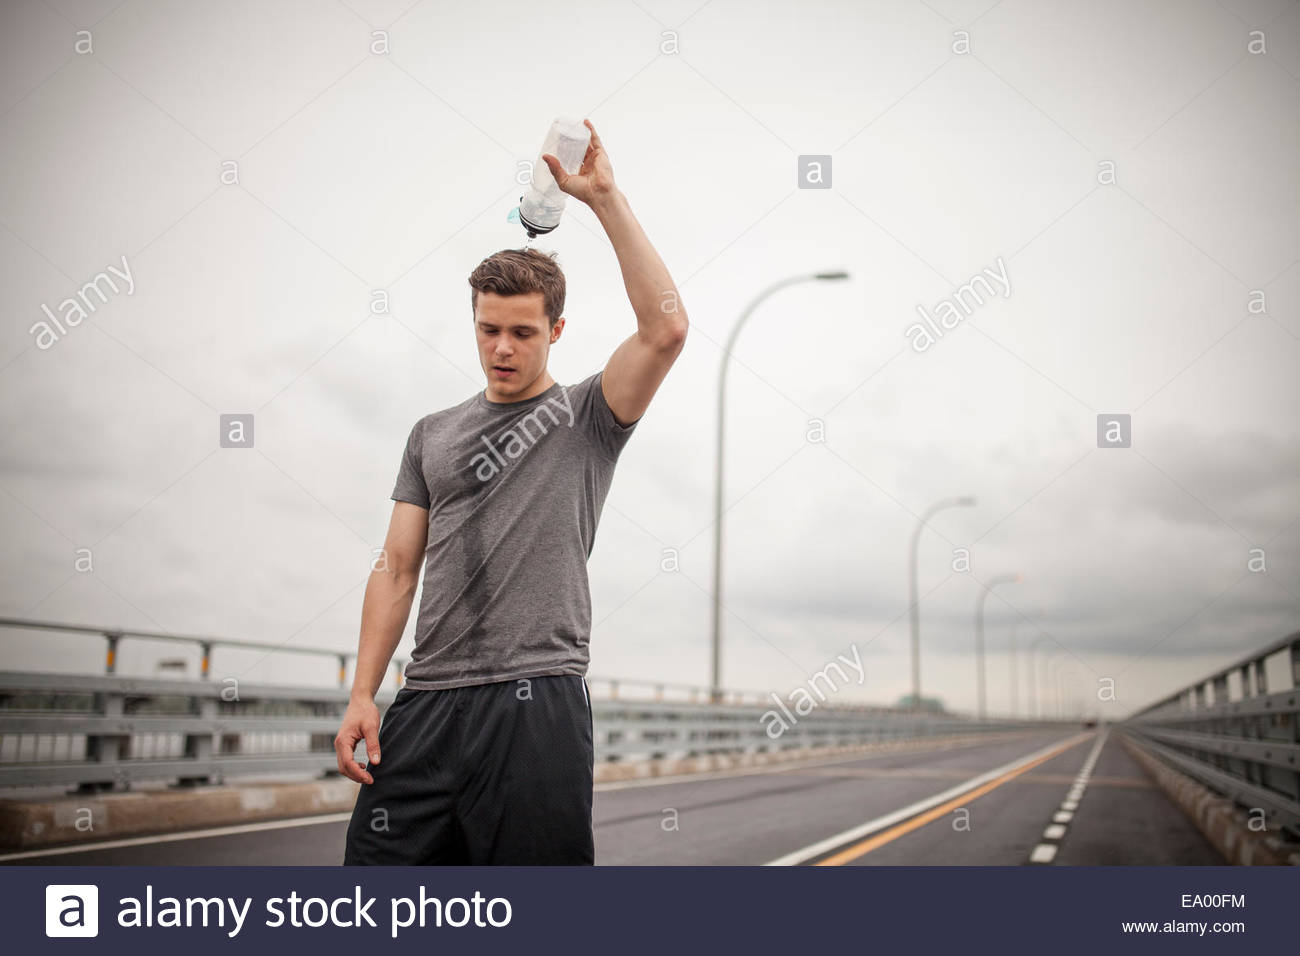 Young man pouring water over head - Stock Image